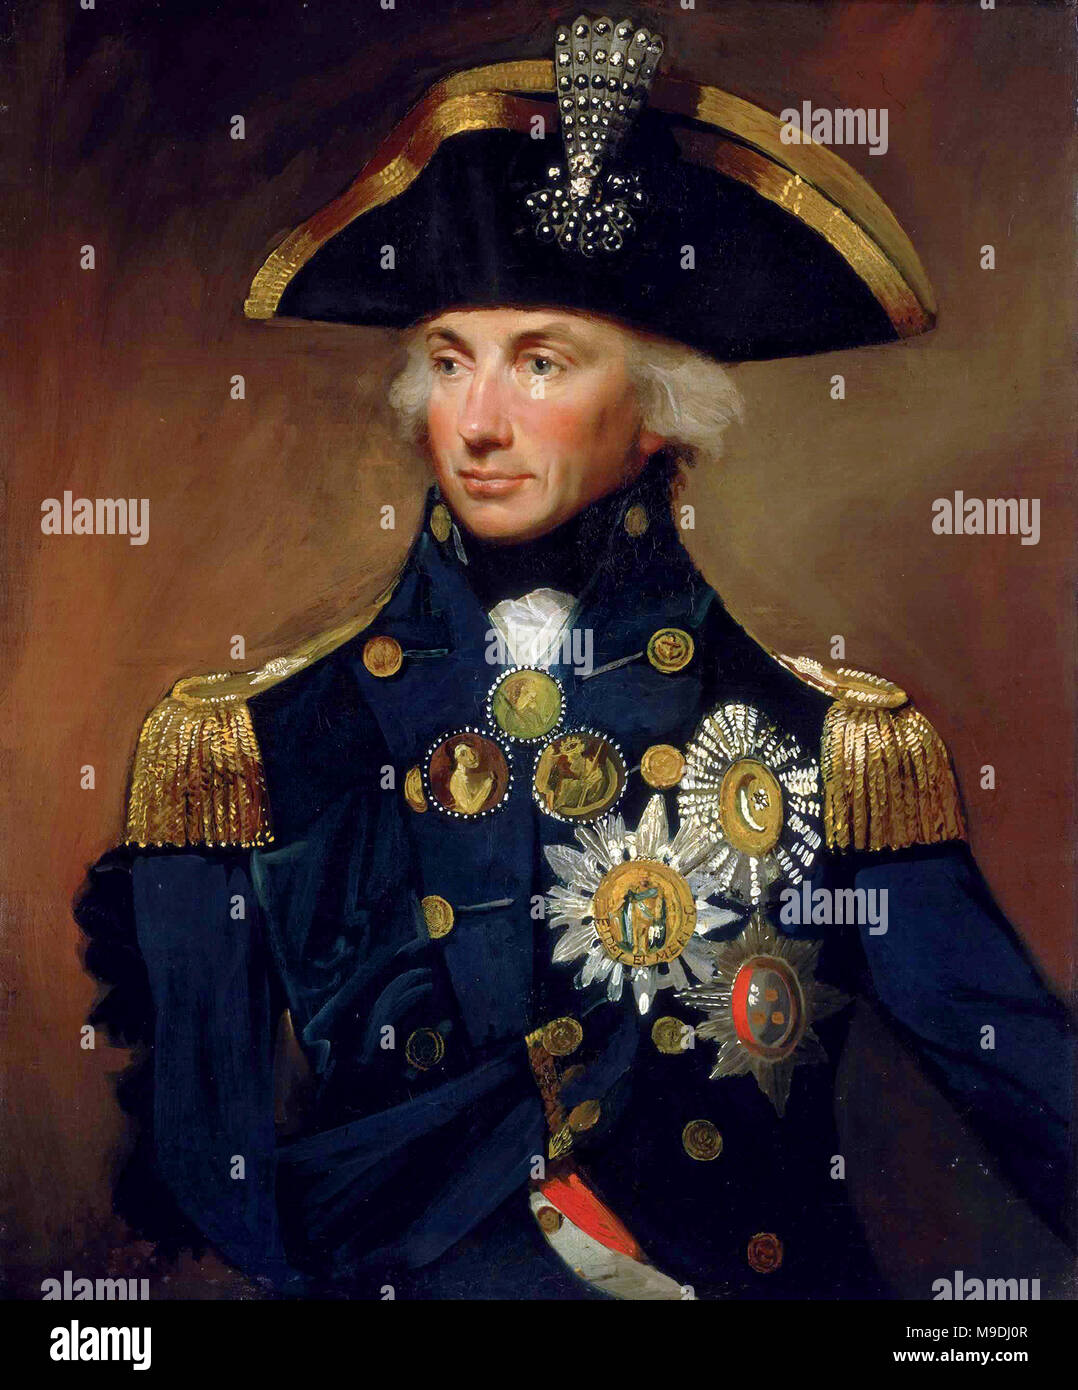 Horatio Nelson, 1st Viscount Nelson, (1758 – 1805)  British officer in the Royal Navy - Stock Image